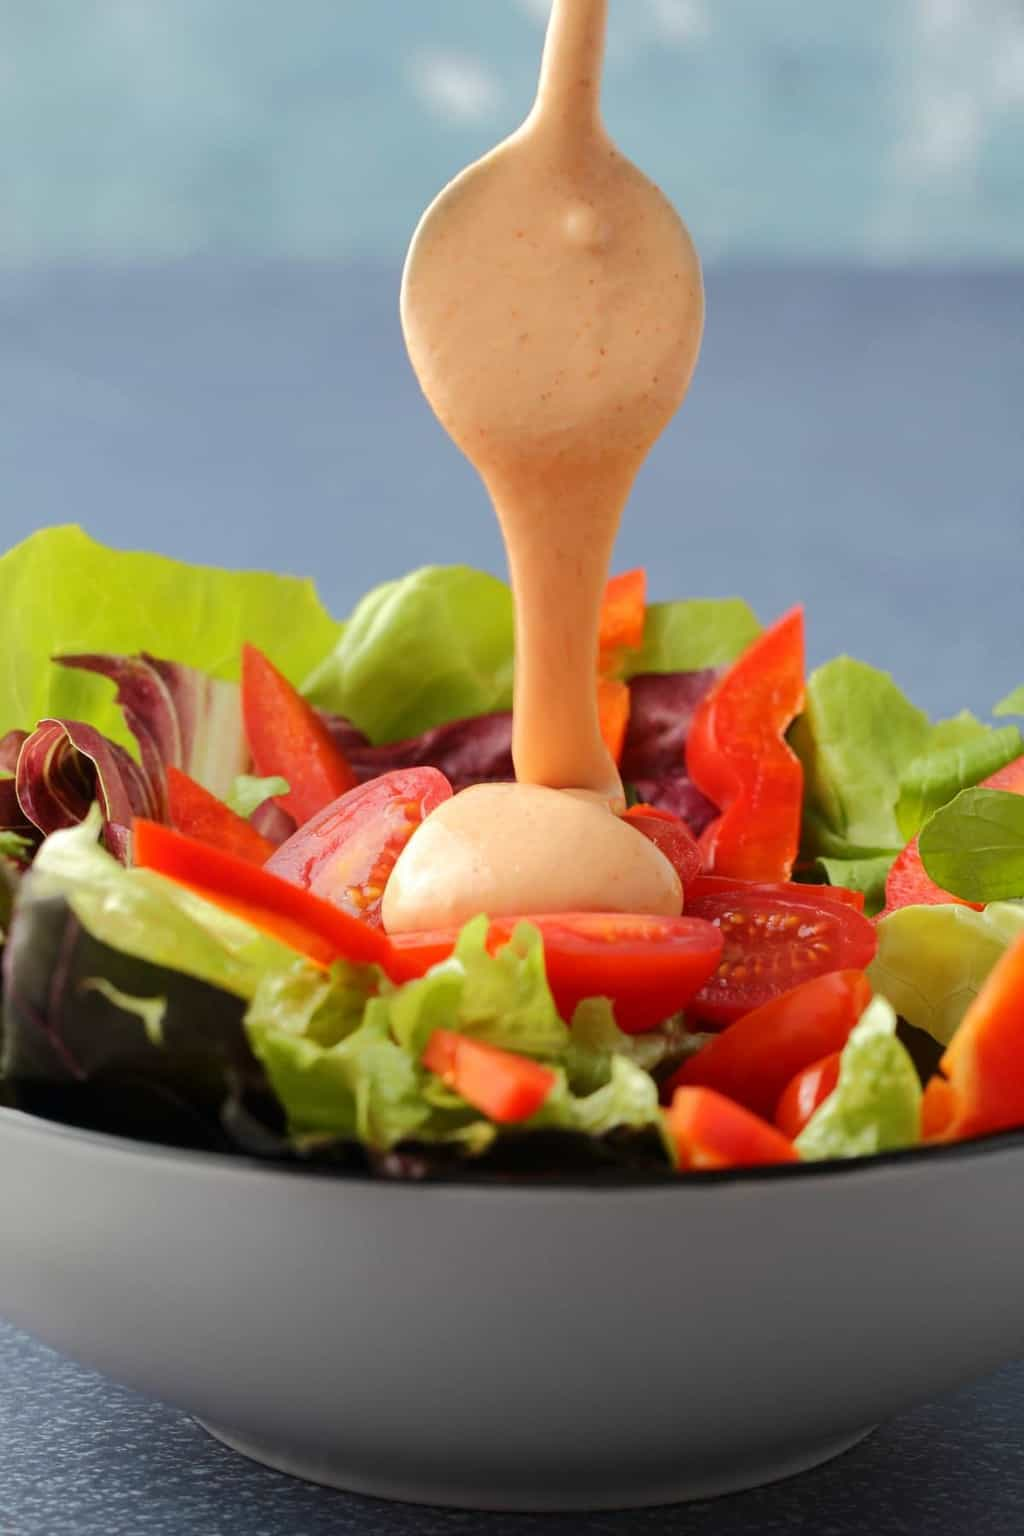 Vegan thousand island dressing pouring from a spoon onto a salad.